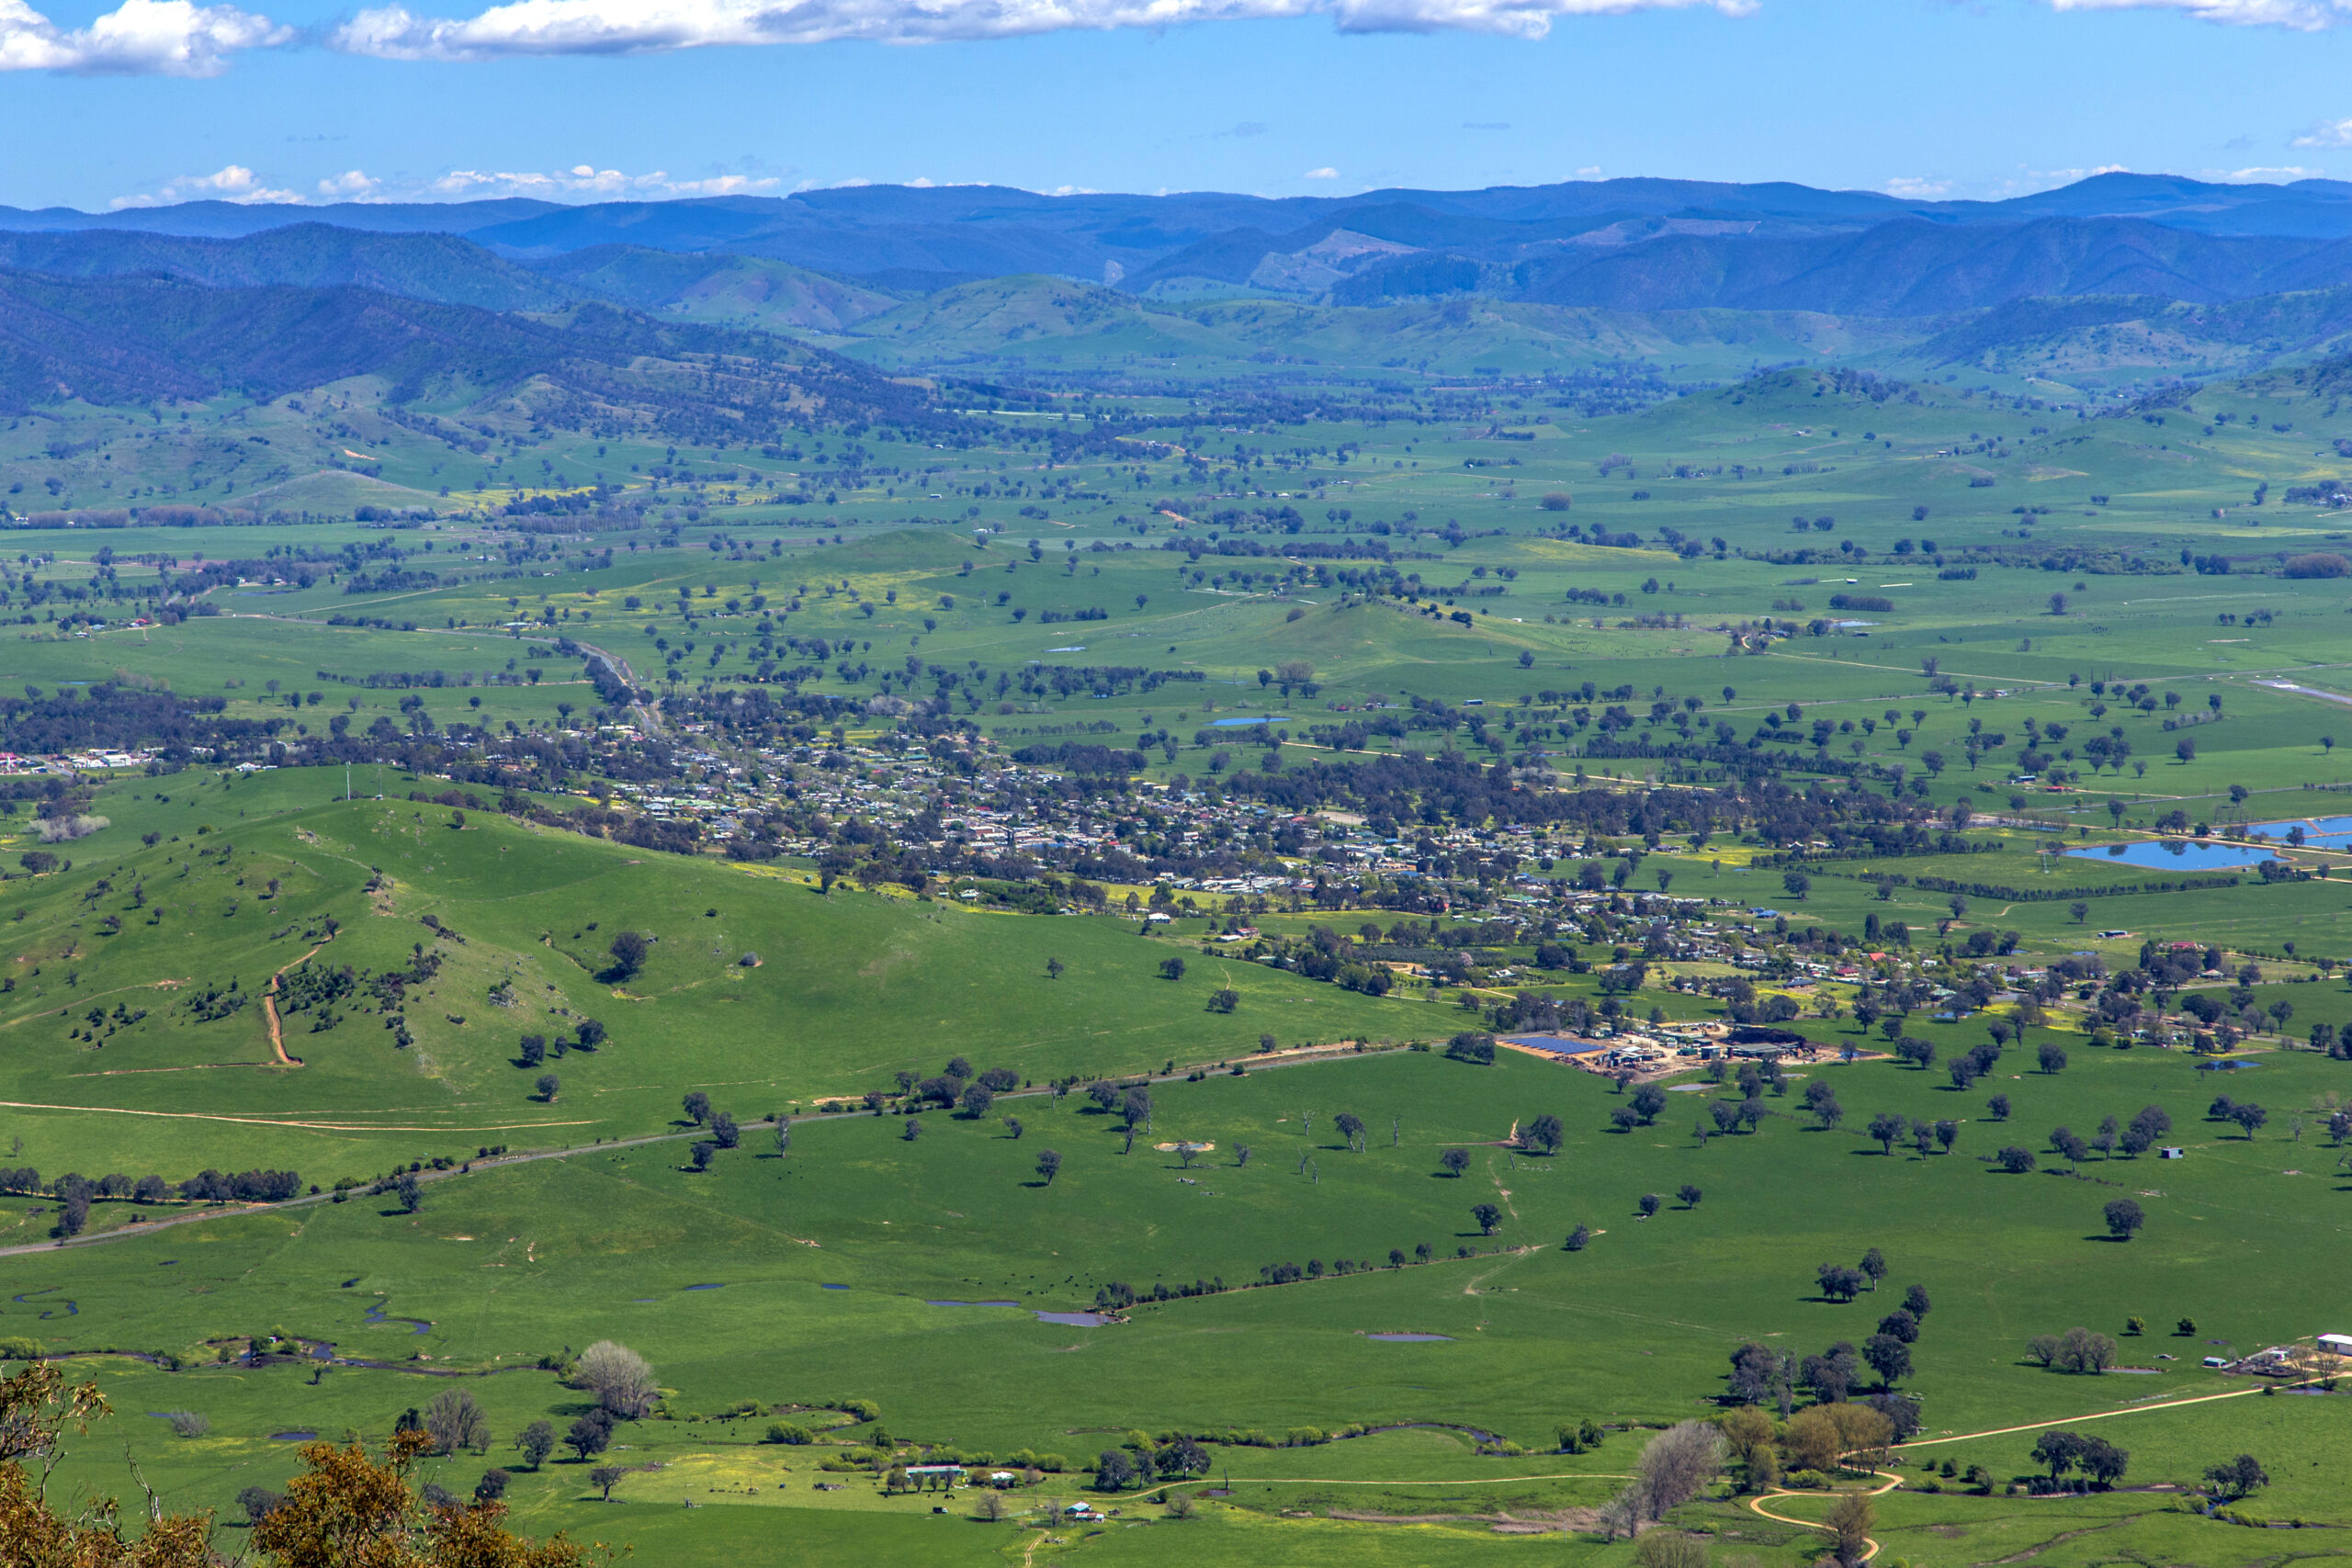 A wide shot from above of Corryong district and township